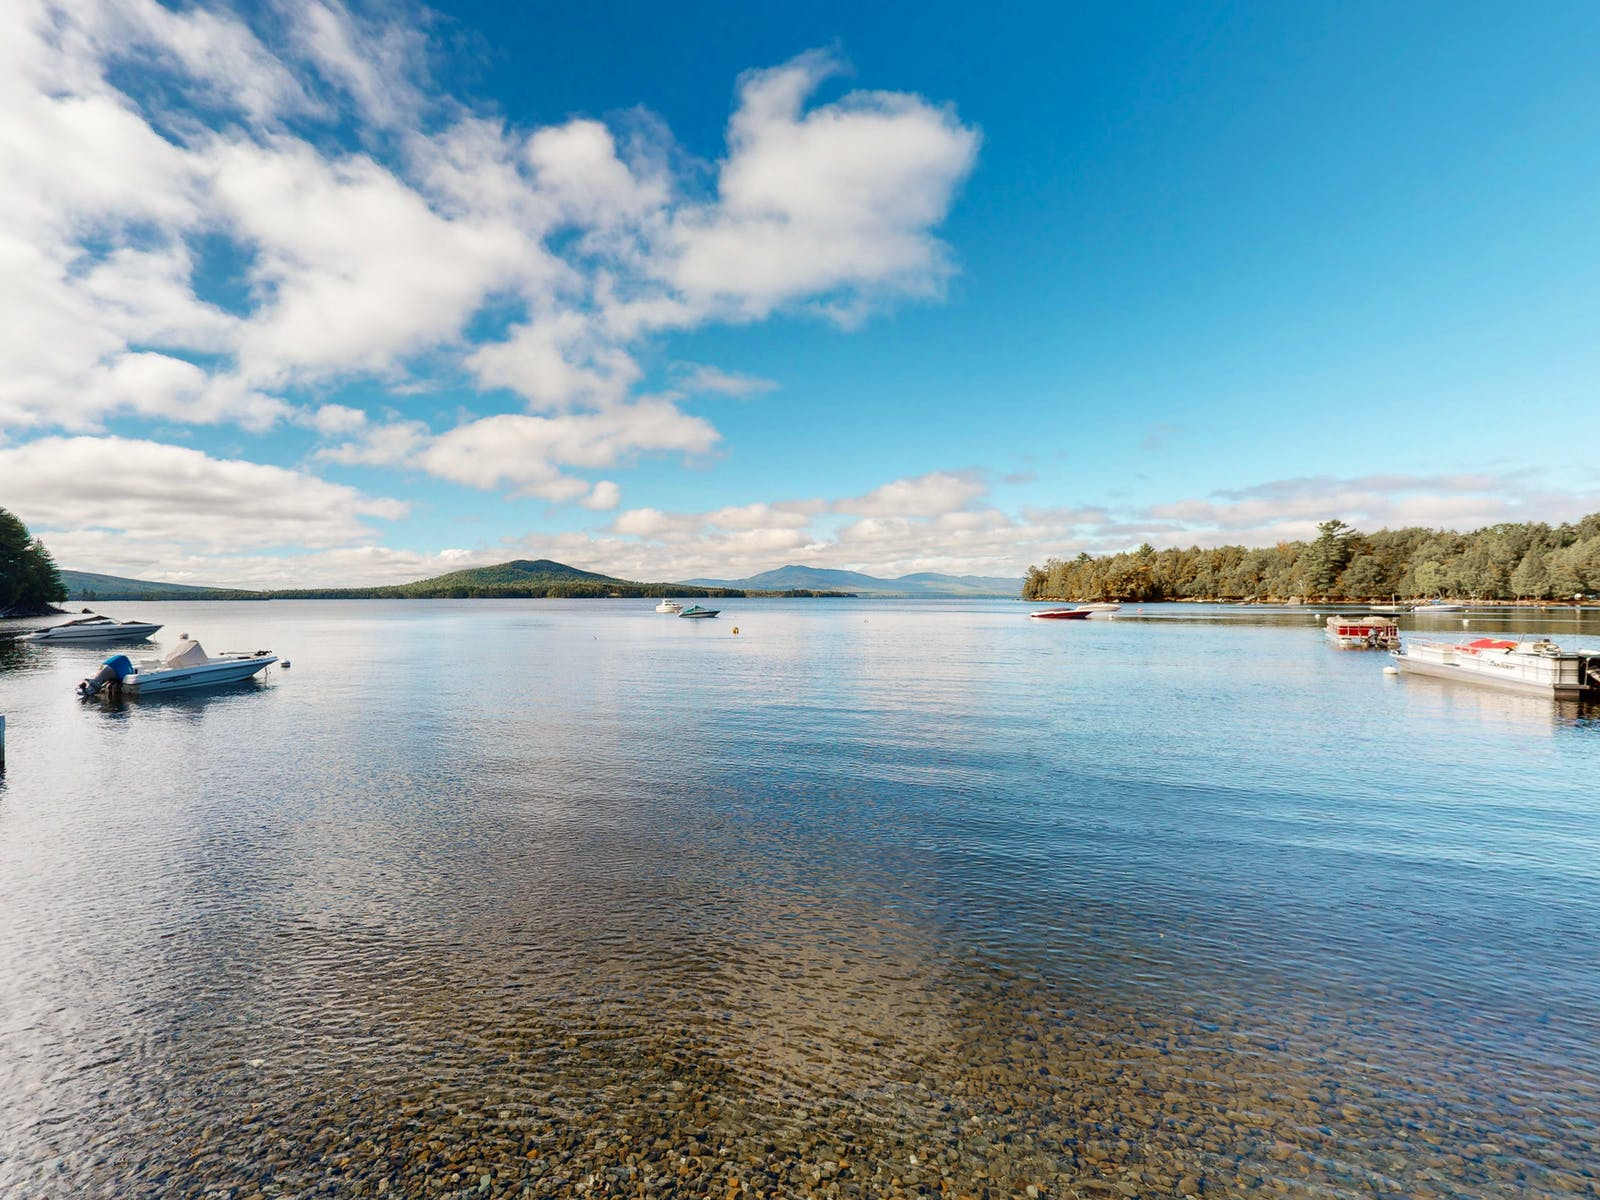 several boats sit in the lake waters of Beaver Cove, ME